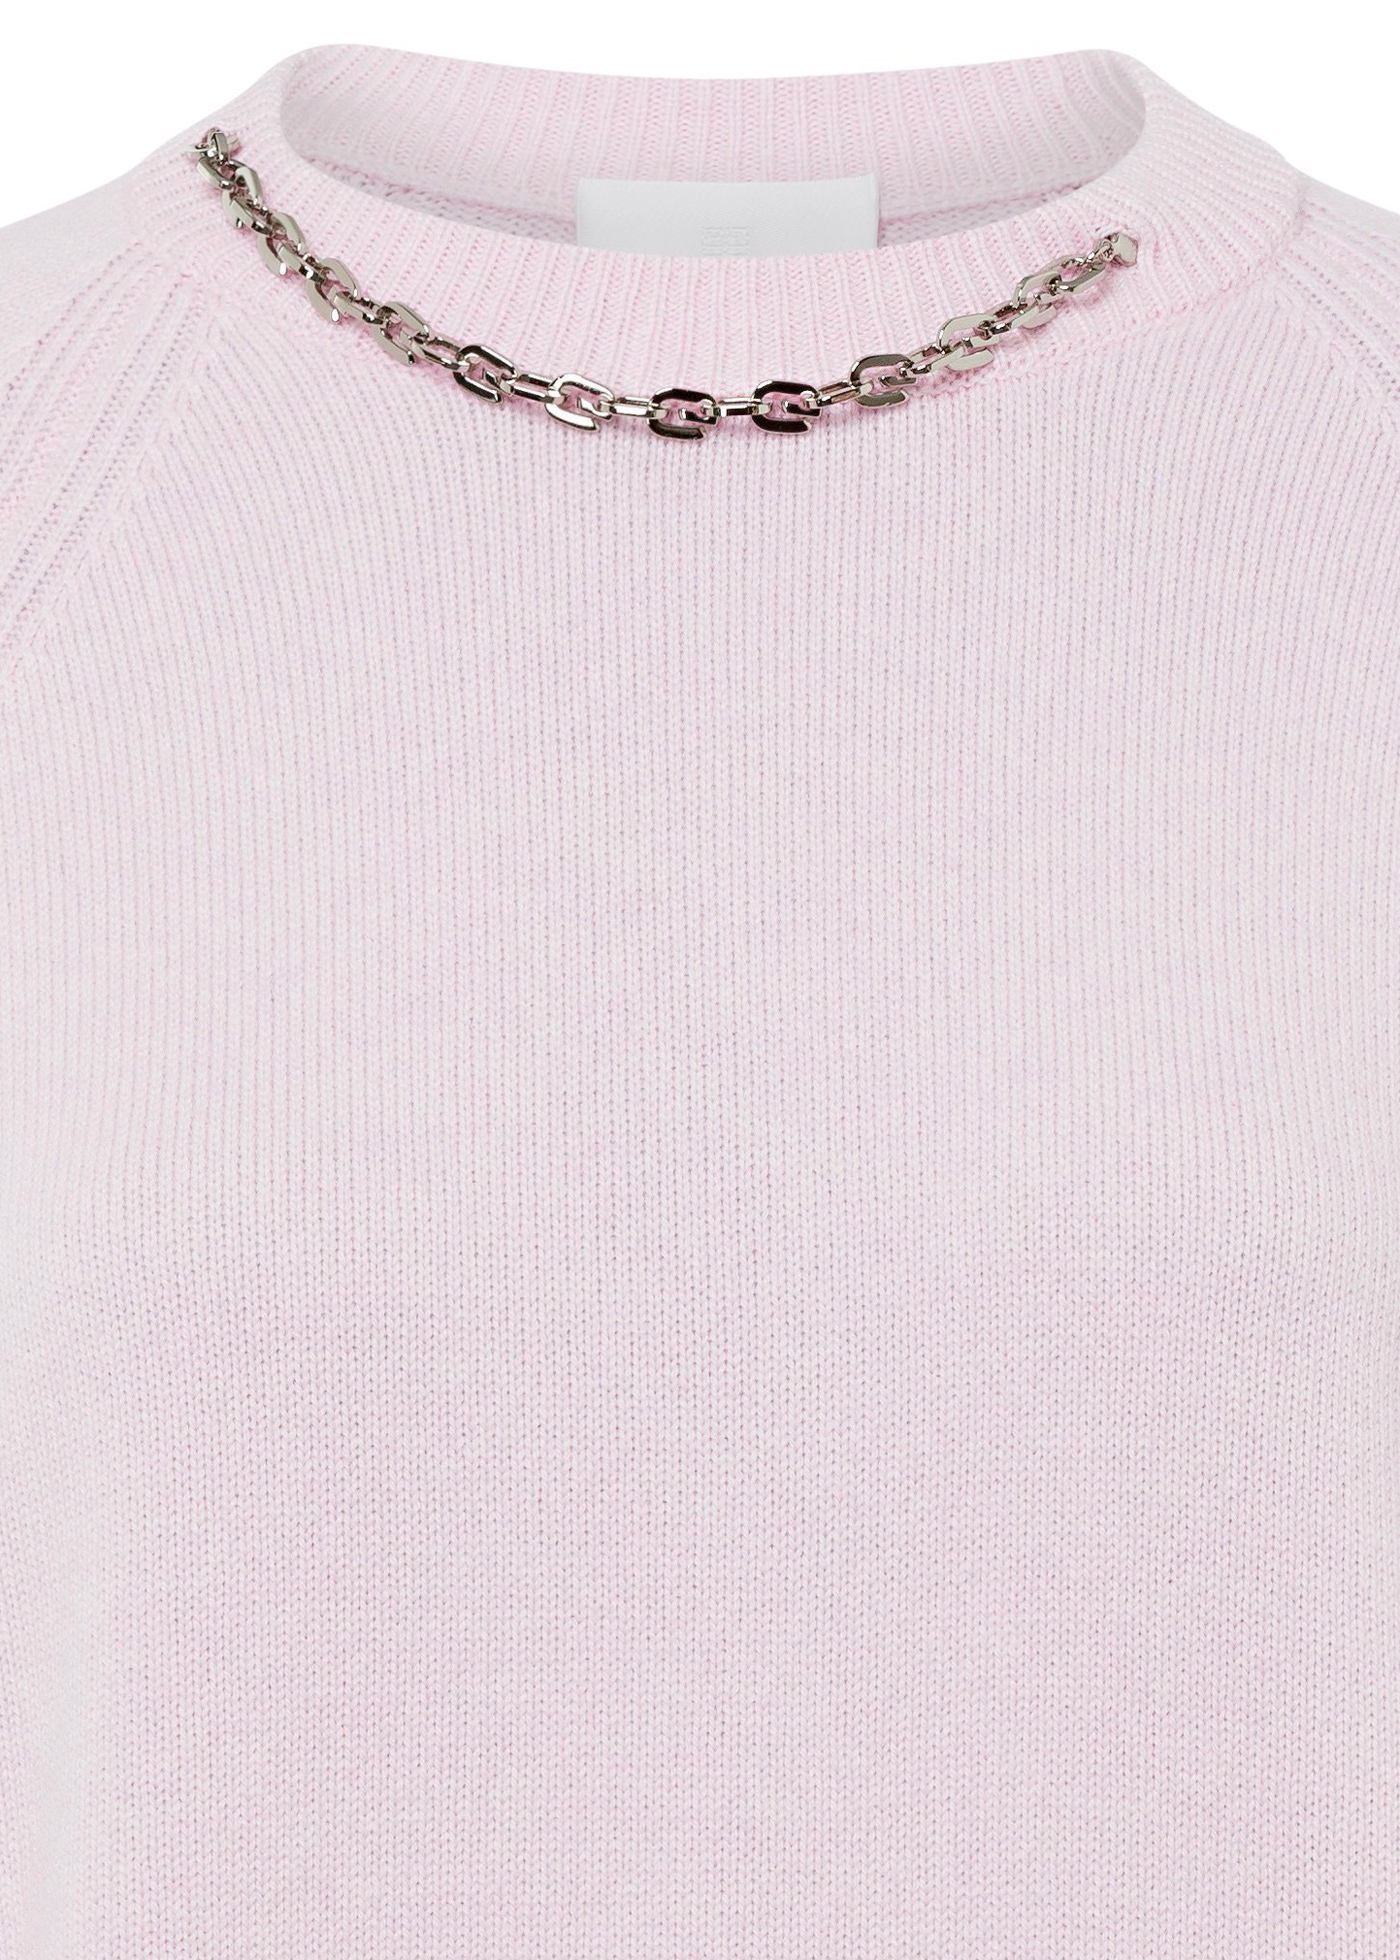 CREW NECK SWEATER CHAIN DETAIL image number 2